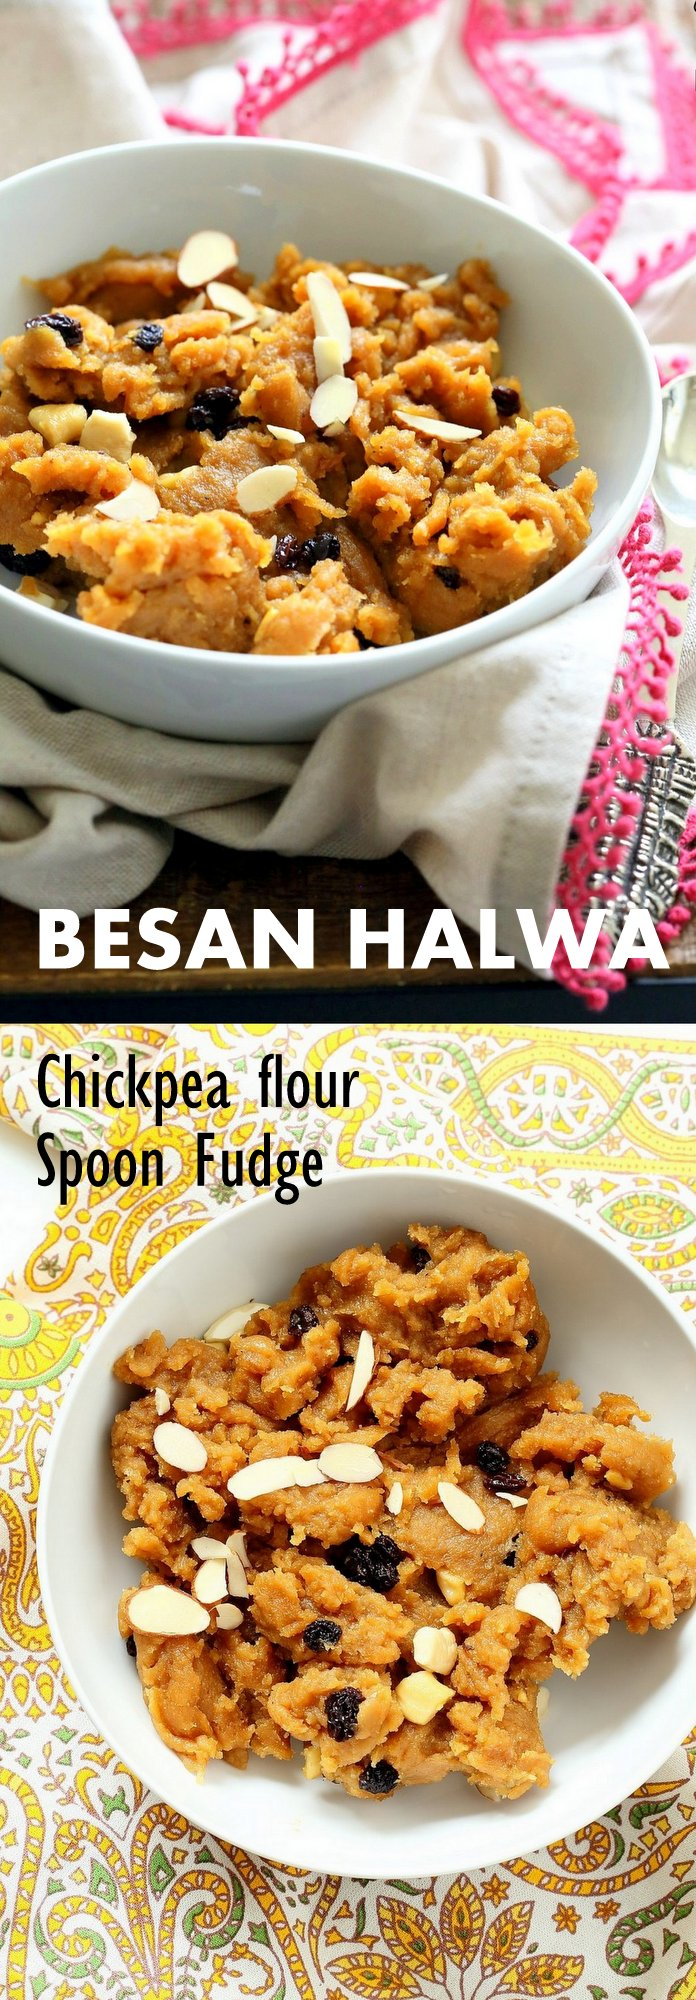 Besan Halwa is a fudgy dessert made with chickpea flour or besan. Chickpea flour Spoon fudge with cardamom and nuts. Use other grain or bean or lentil flours for variation. 6 Ingredients, 15 Mins. Vegan Gluten-free Grain-free Dessert Recipe. | VeganRicha.com